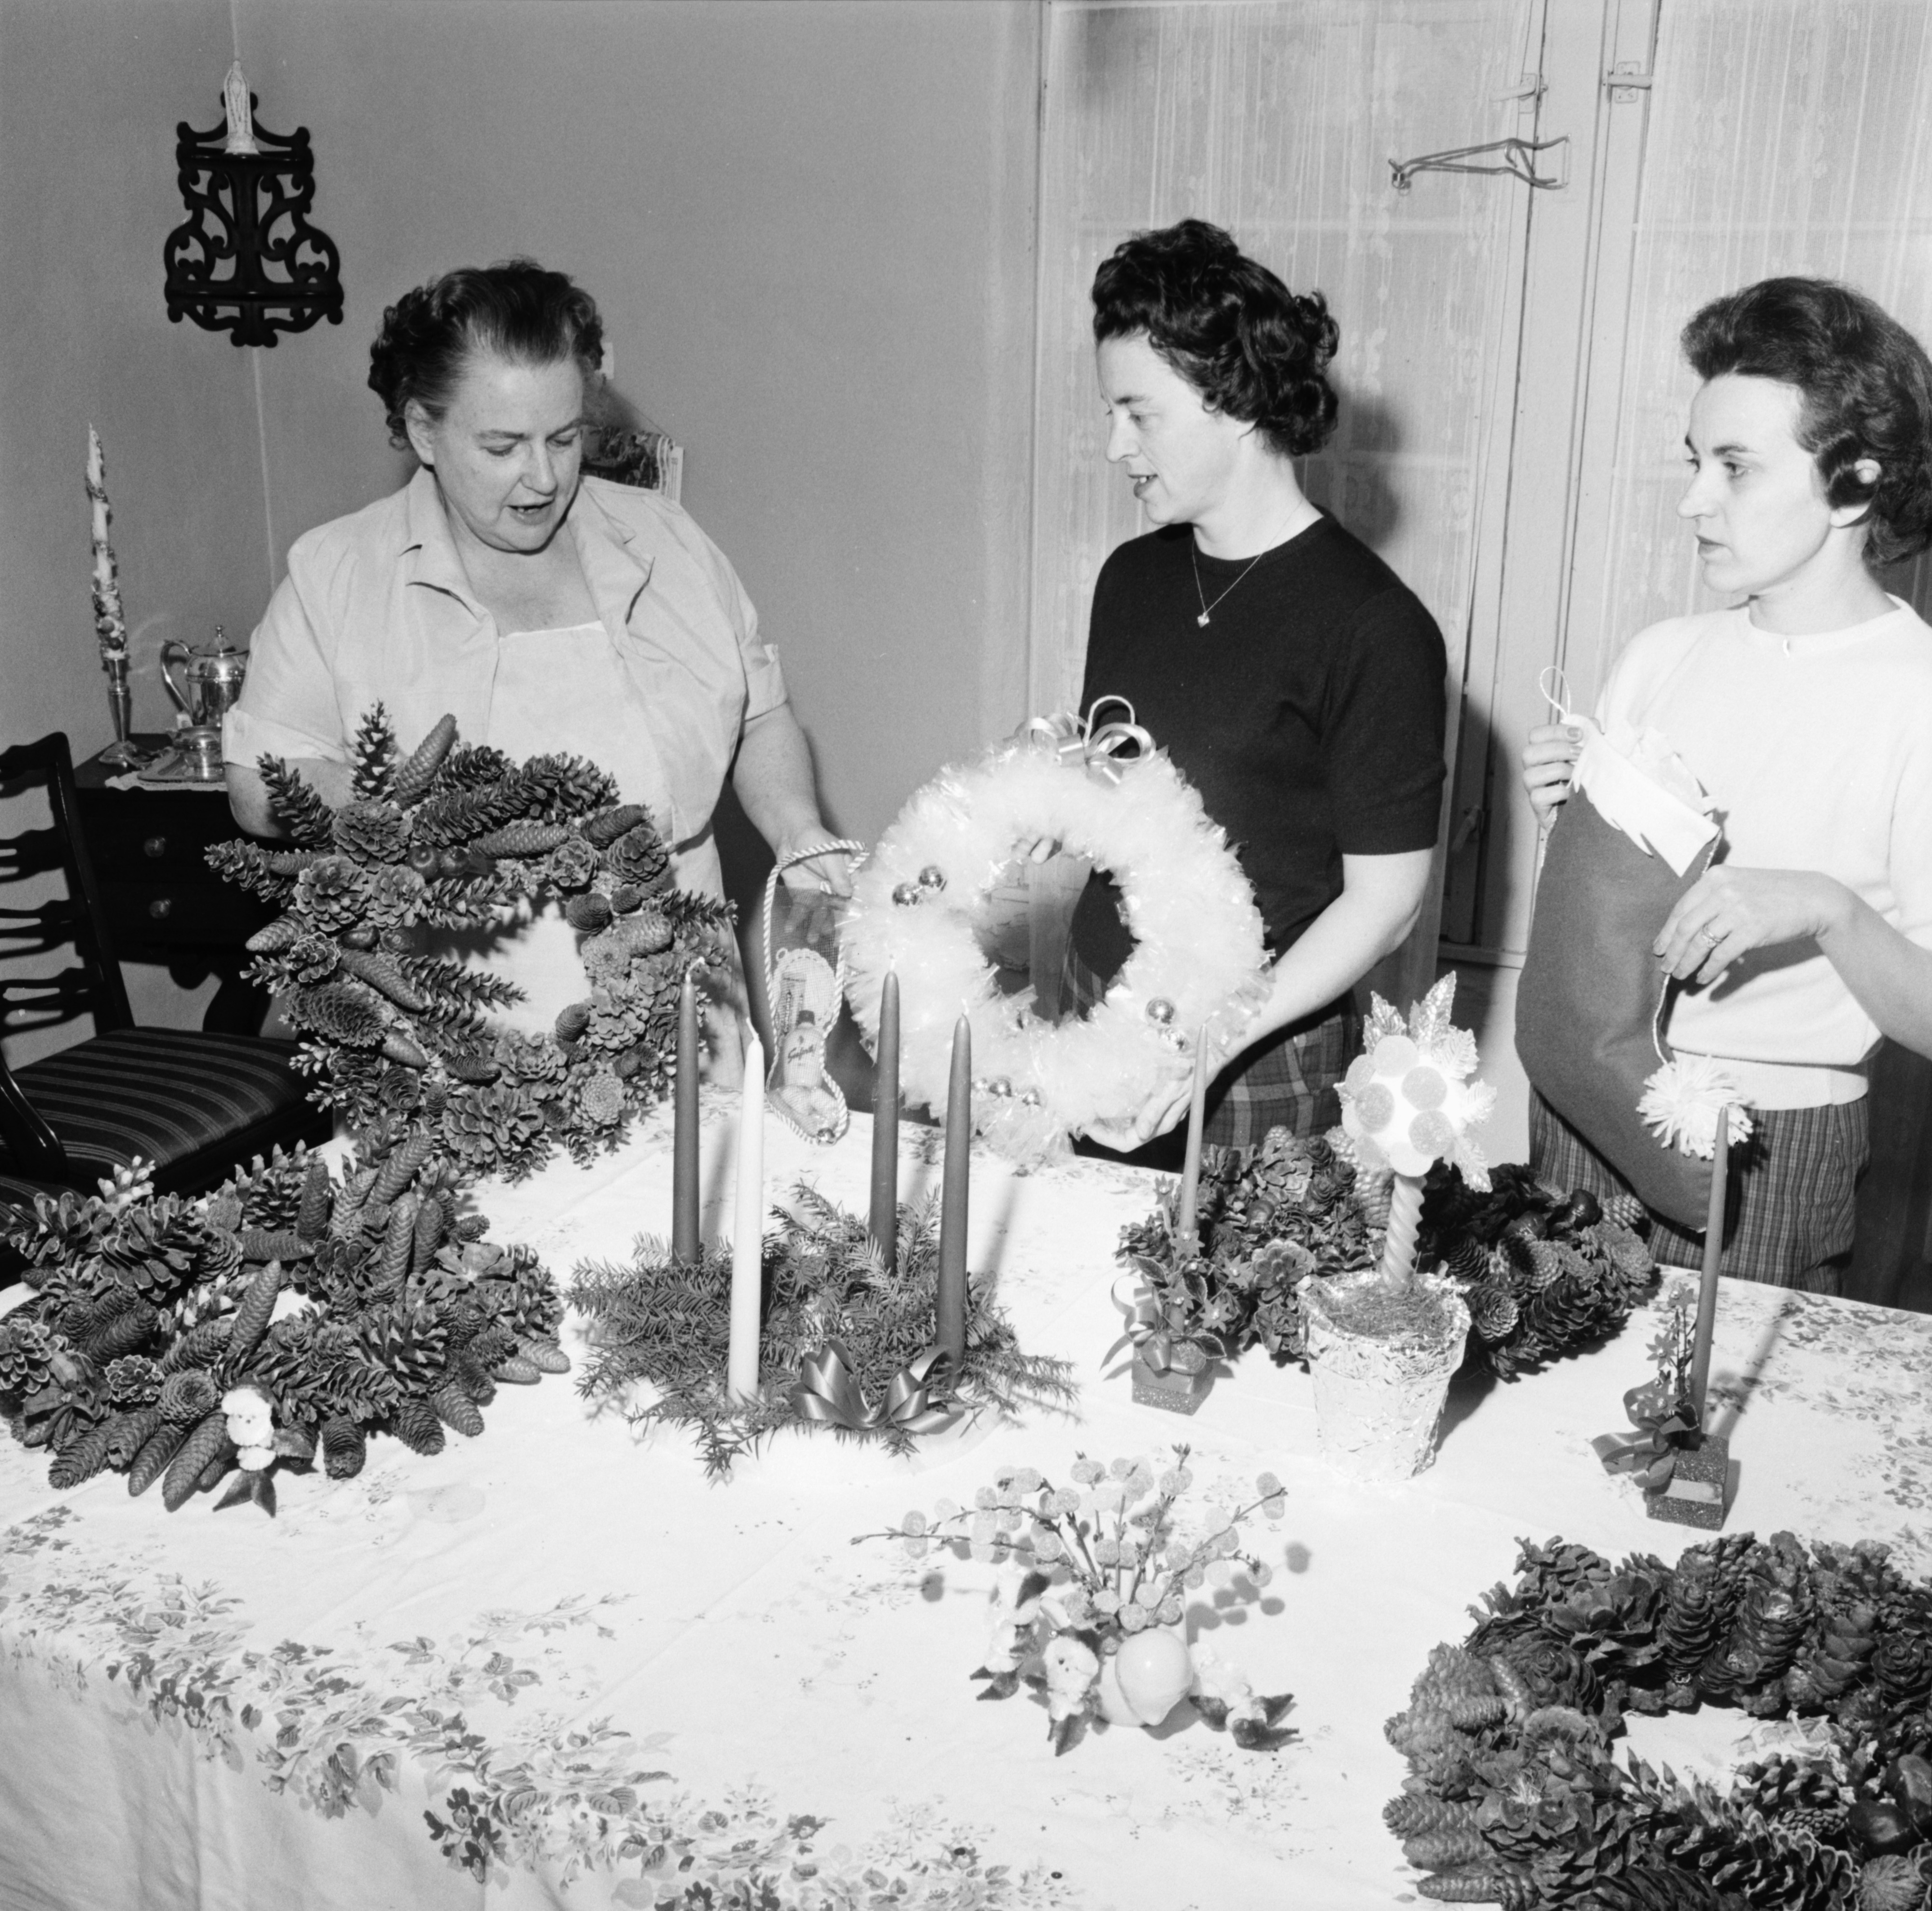 St. John's Holiday Bazaar Preparations, November 1961 image